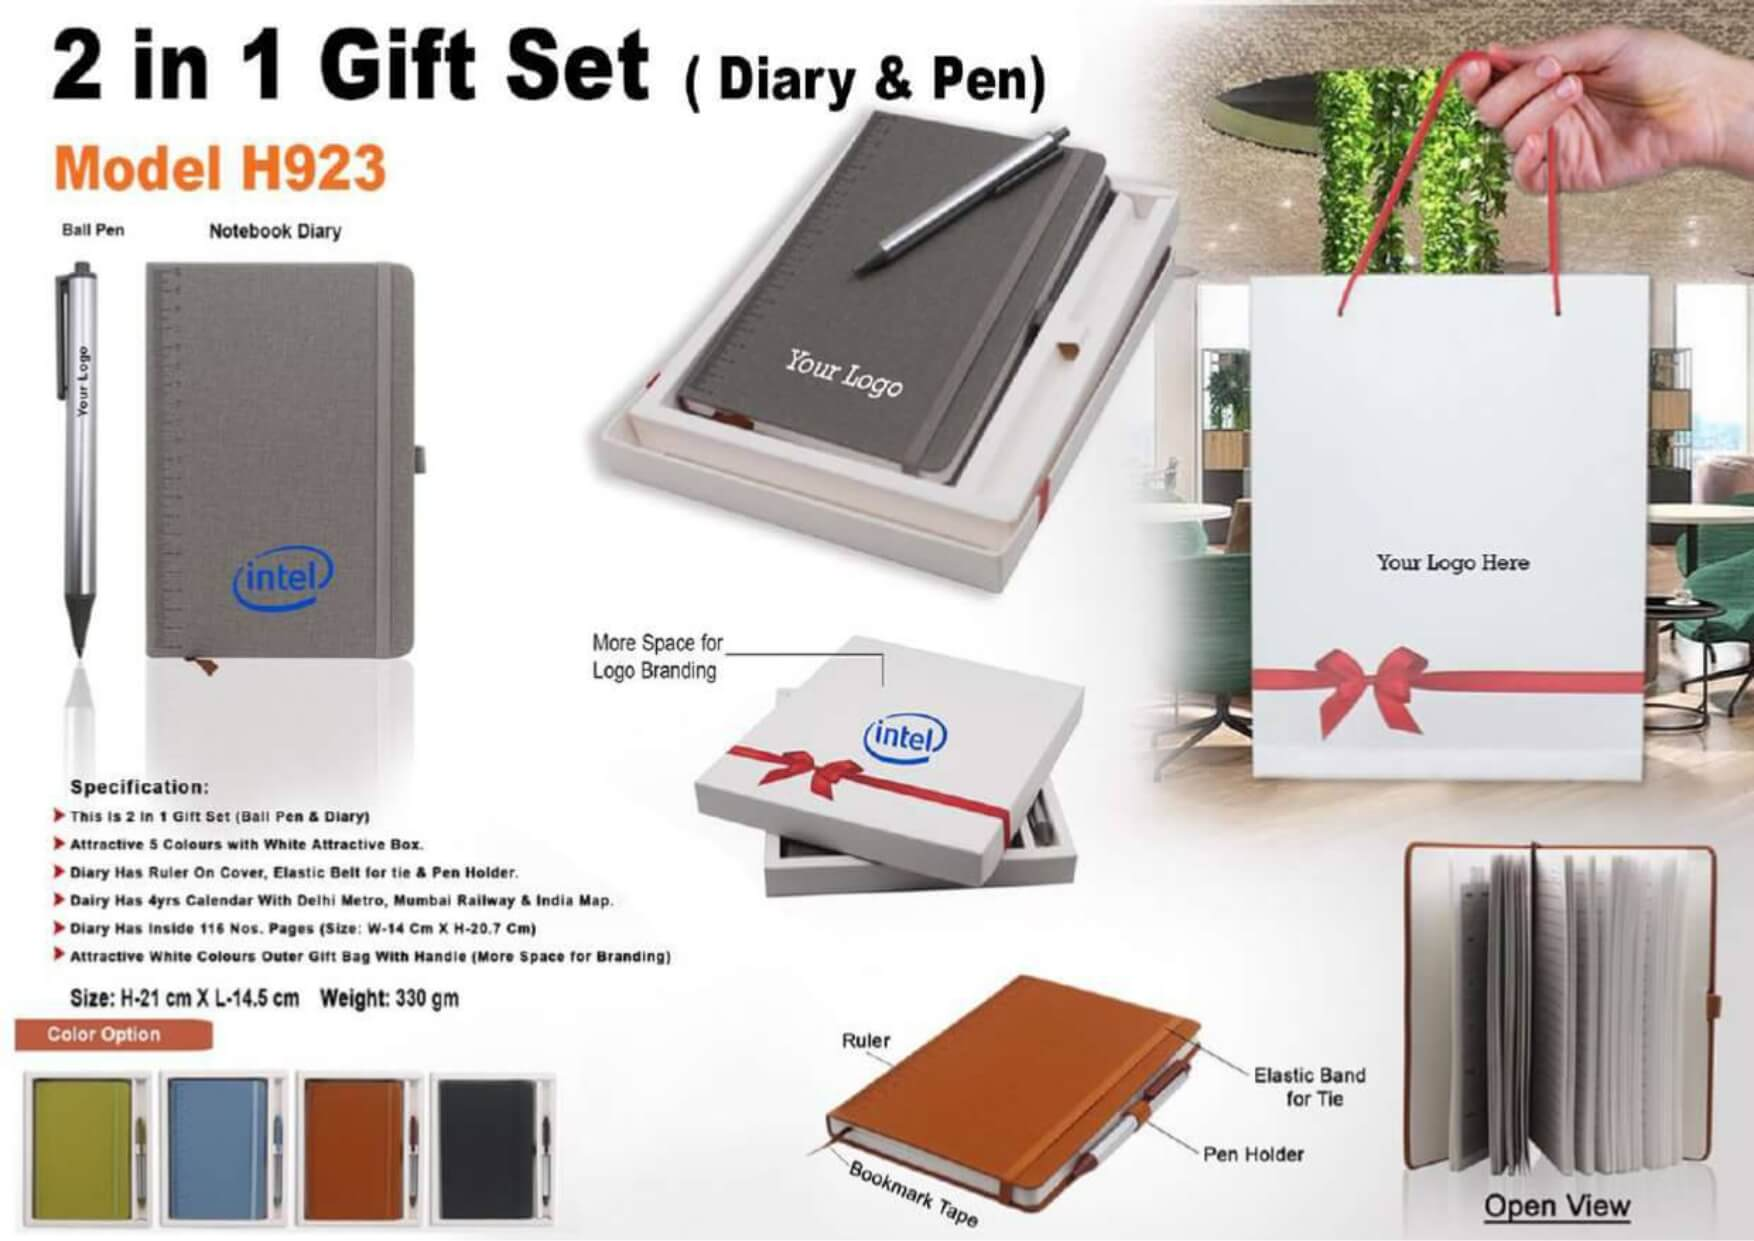 Diary and Pen 2 in 1 Gift Set 923